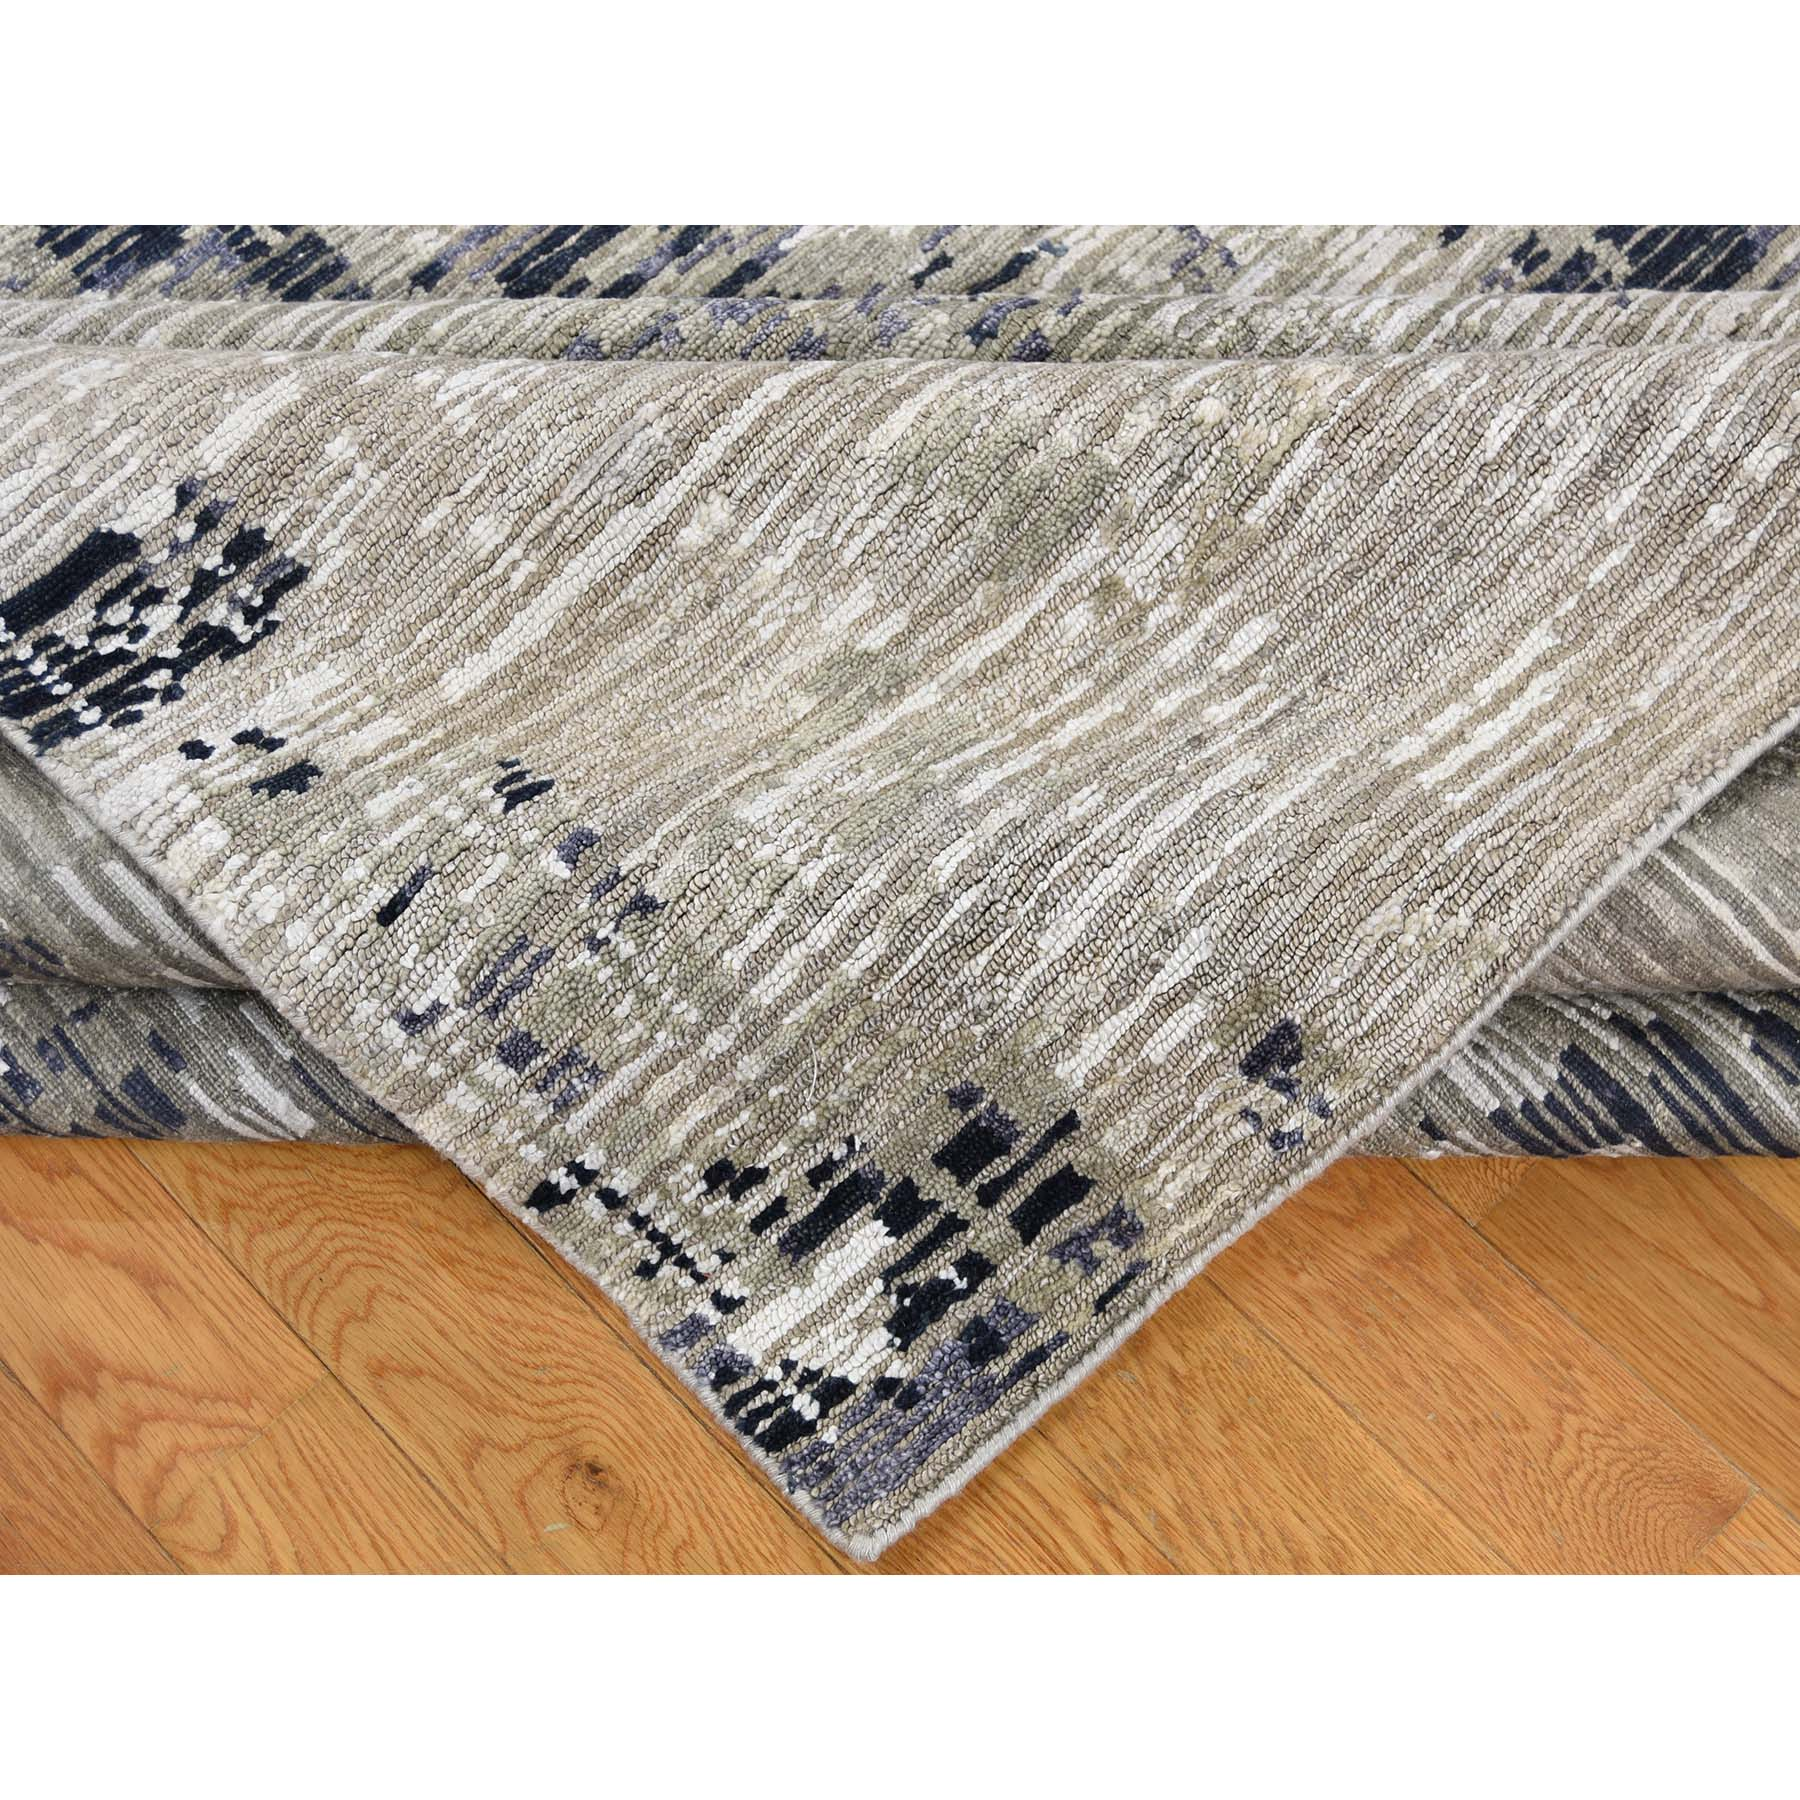 8-10 x11-8  Hand-Knotted Cut and Loop Abstract Design Wool and Silk Oriental Rug